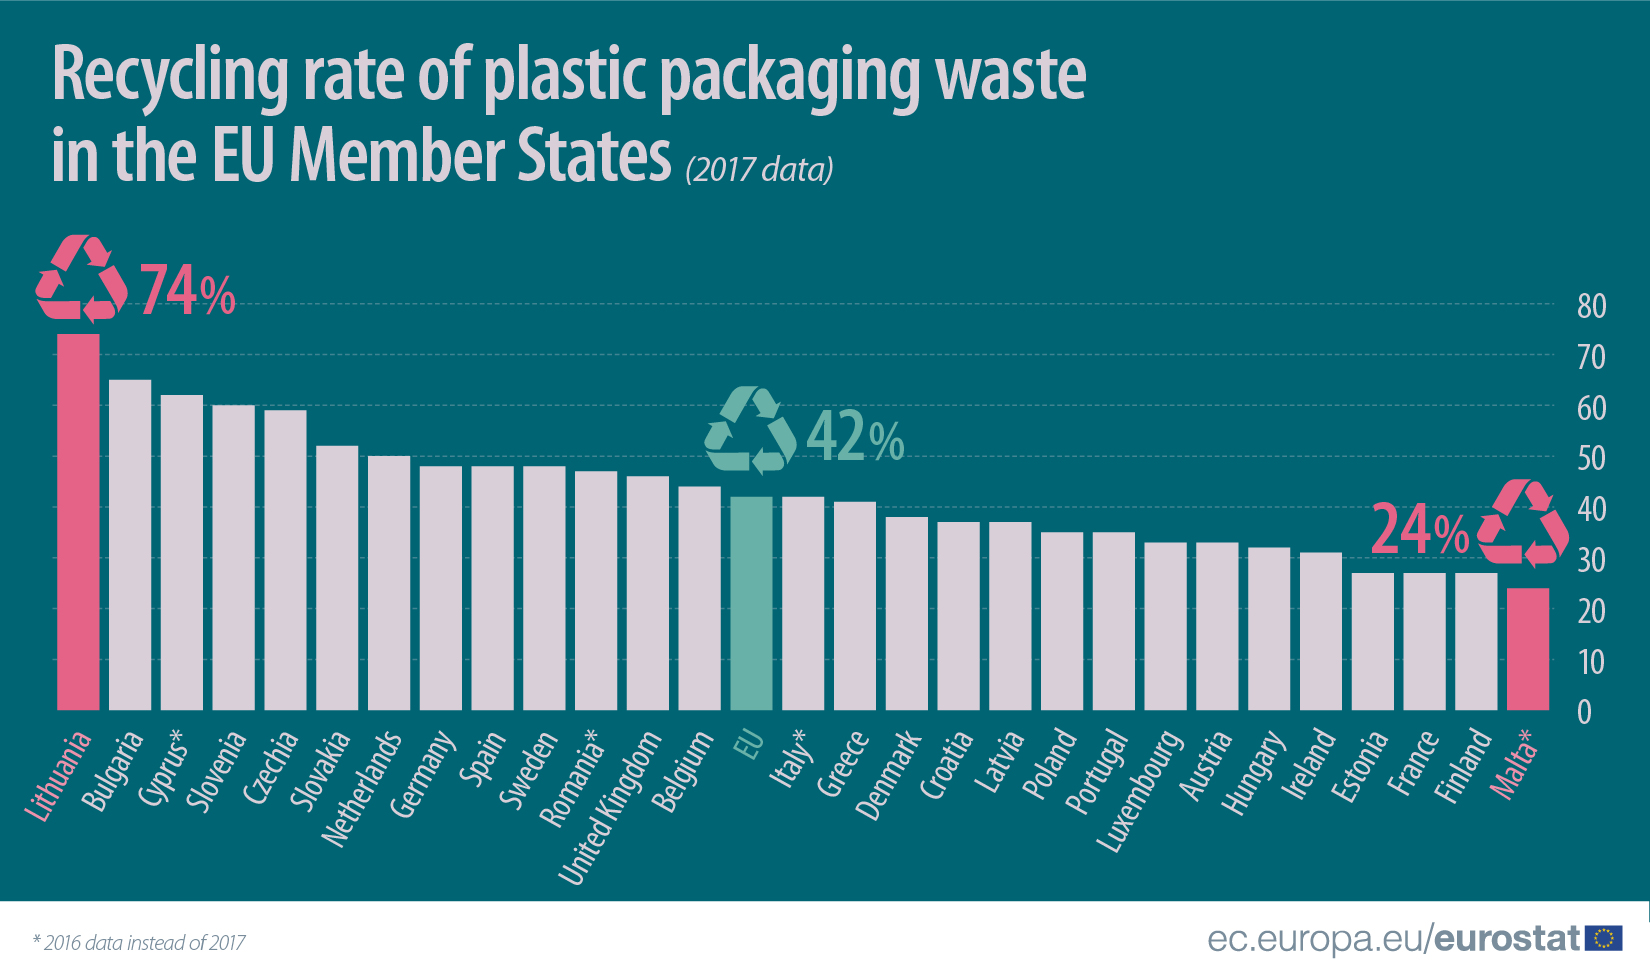 Recycling_rate_of_plastic_packaging_waste_in_the_EU_Member_States